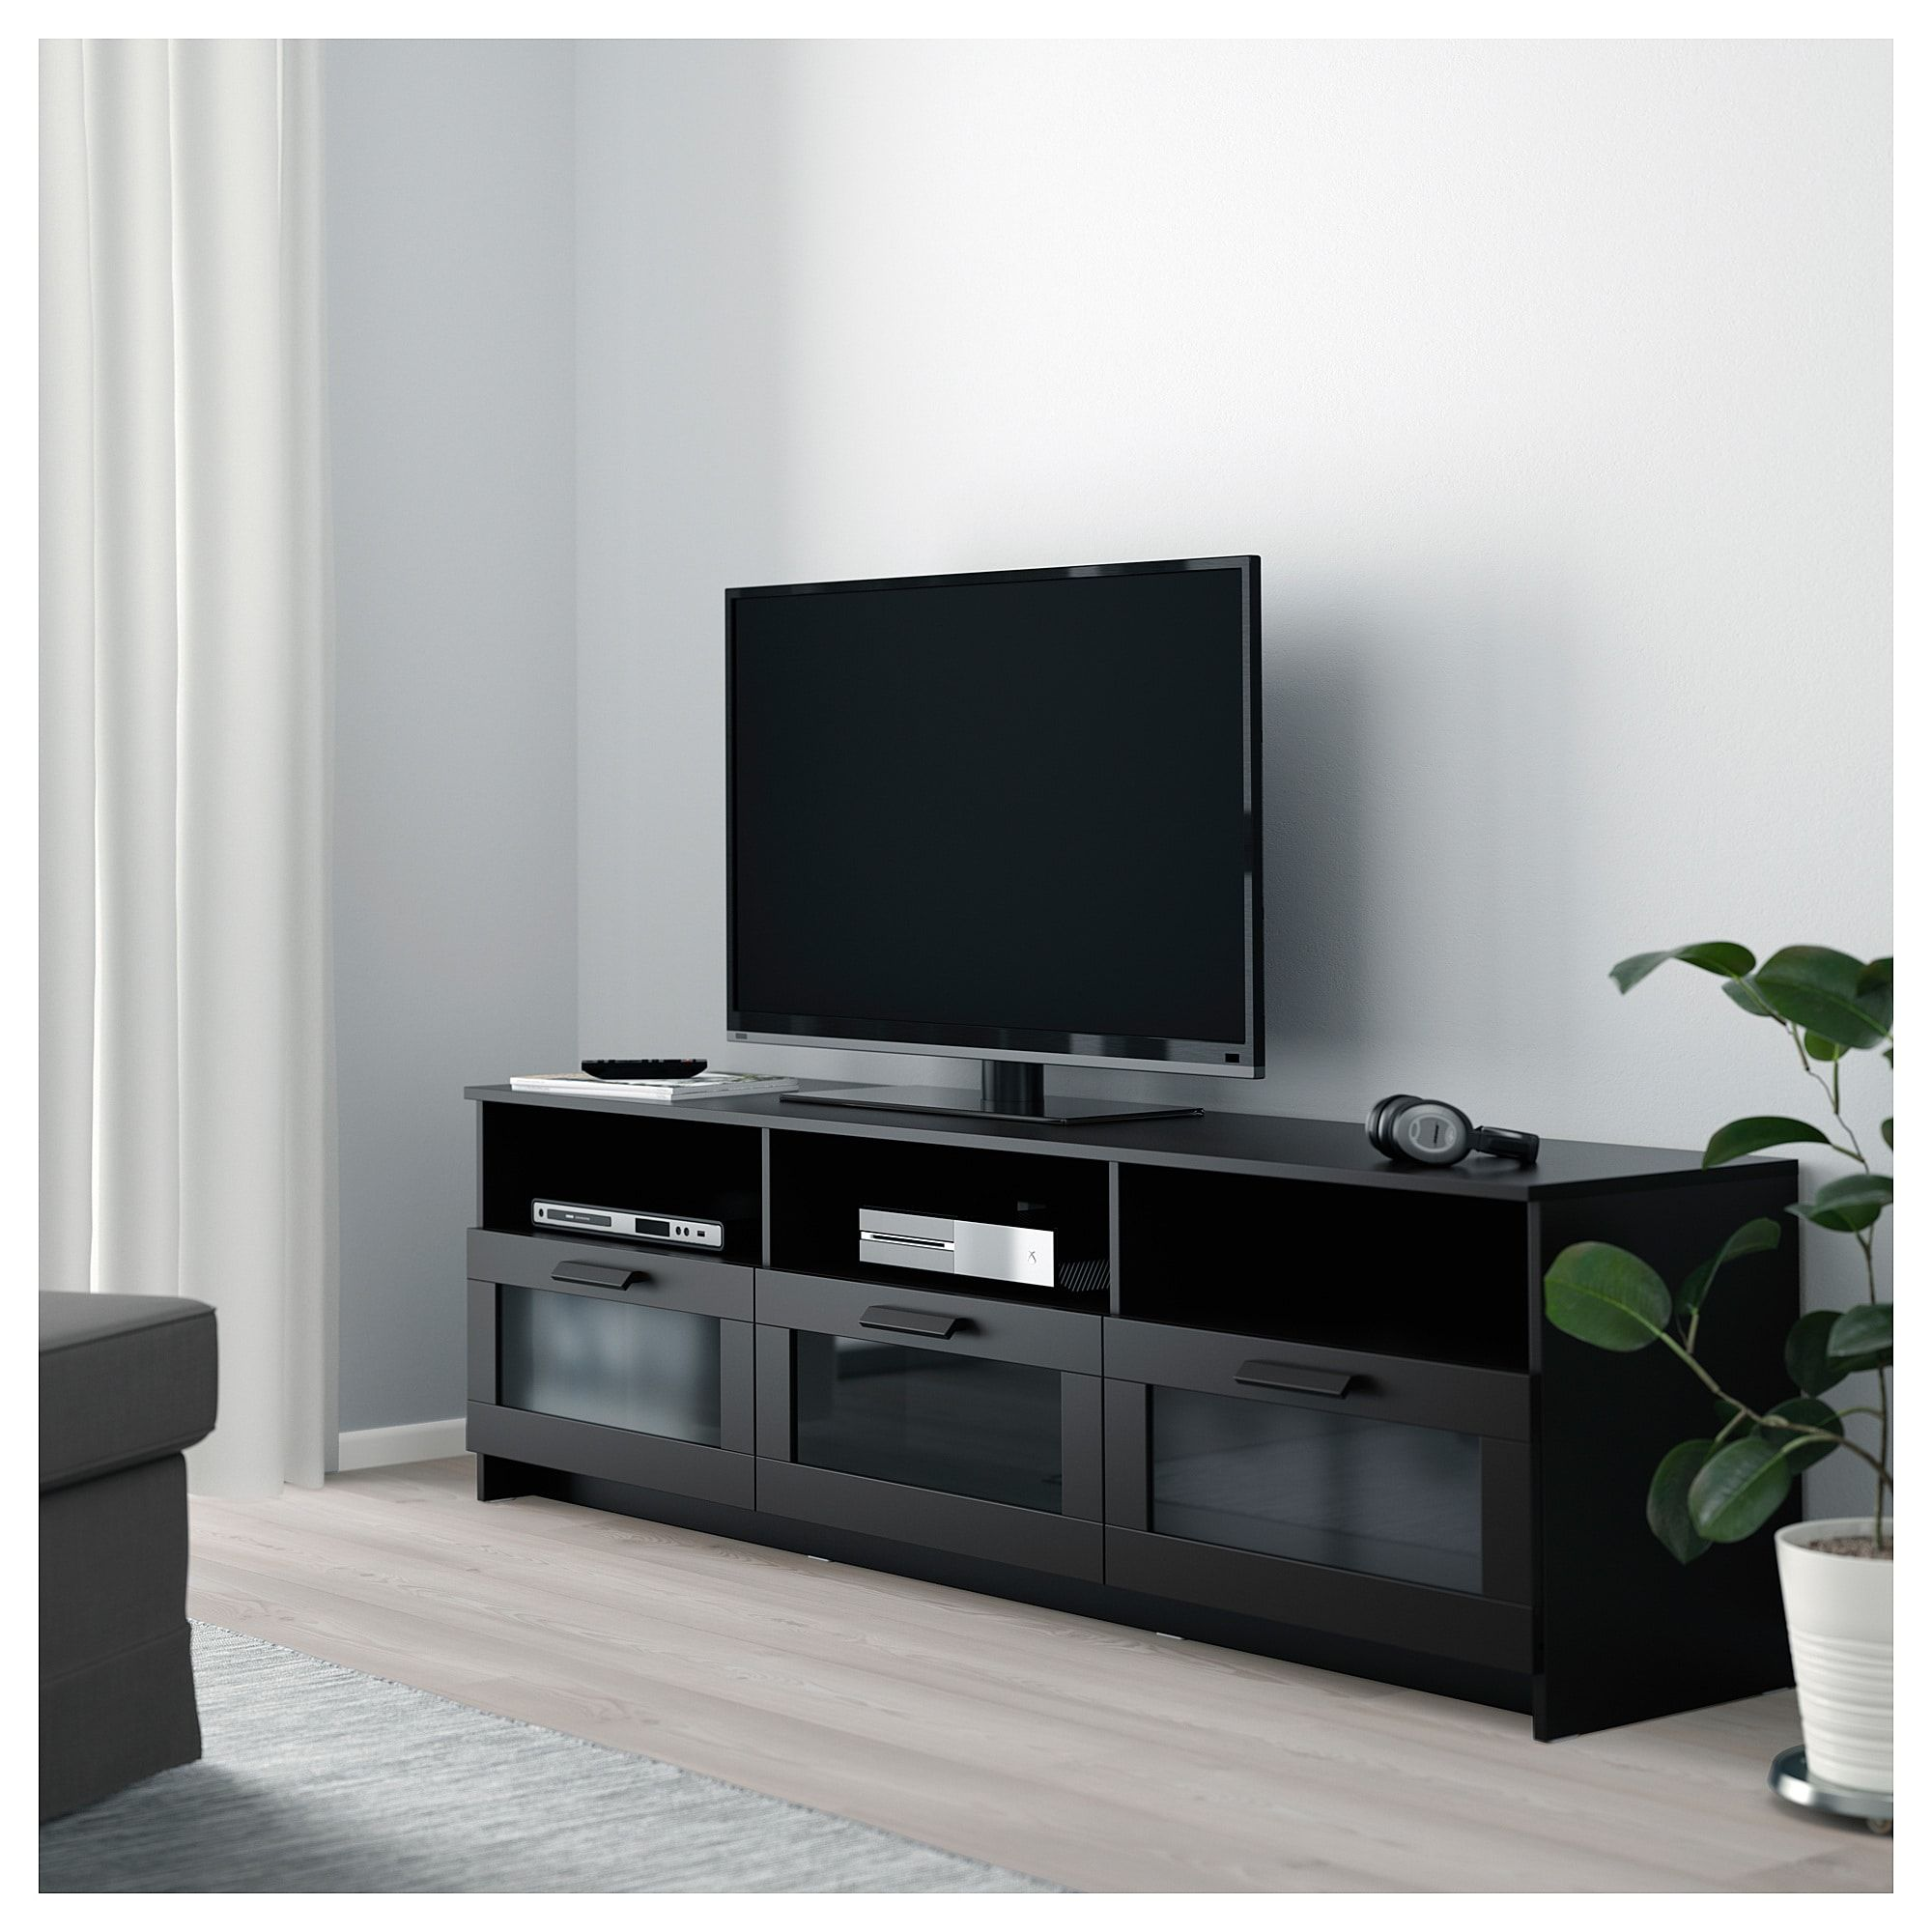 Ikea Brimnes Tv Bench Black In 2019 Products Pinterest Tv